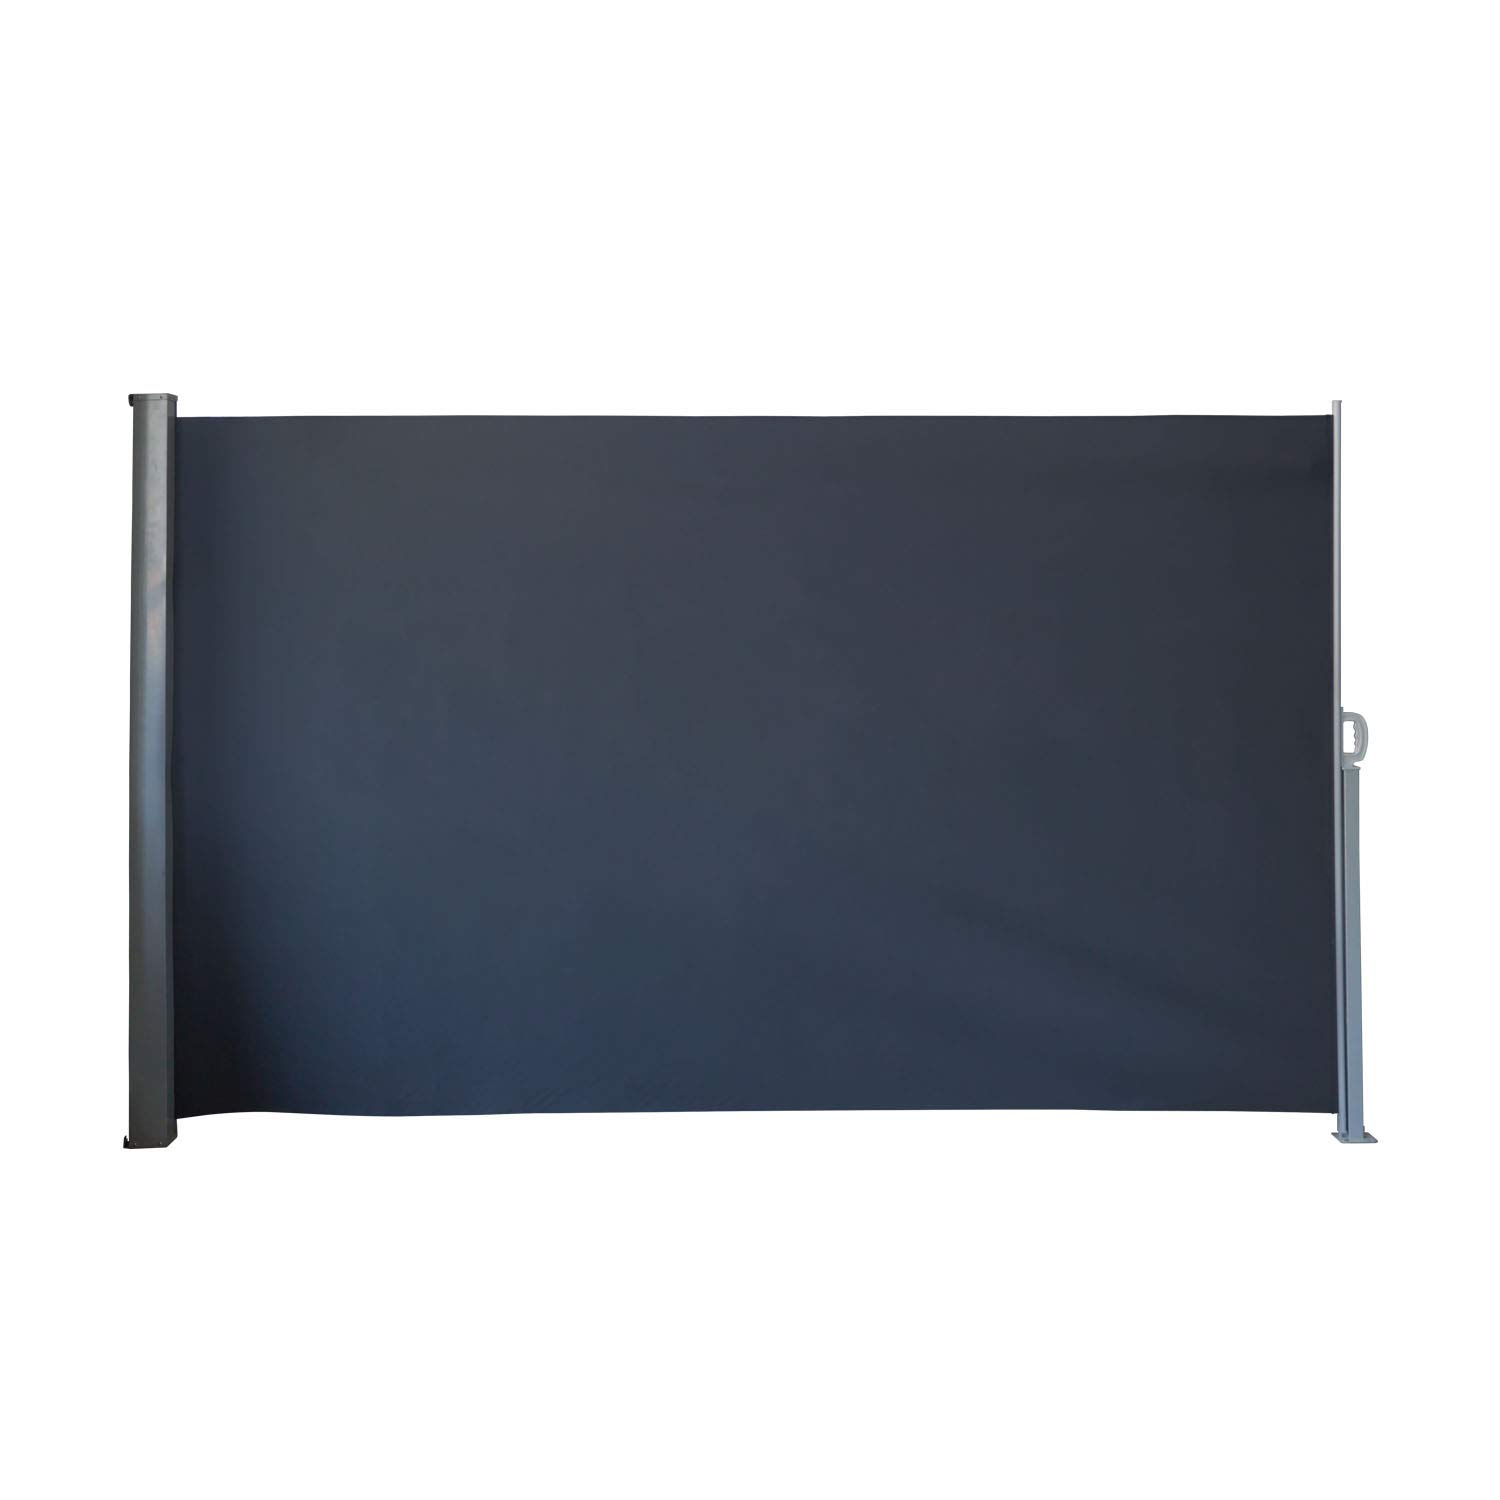 Kinbor 9.8'x5.9' Outdoor Retractable Folding Side Awning Patio Waterproof Sun Shade Garden Wind Privacy Screen Divider Aluminum Support Pole Black